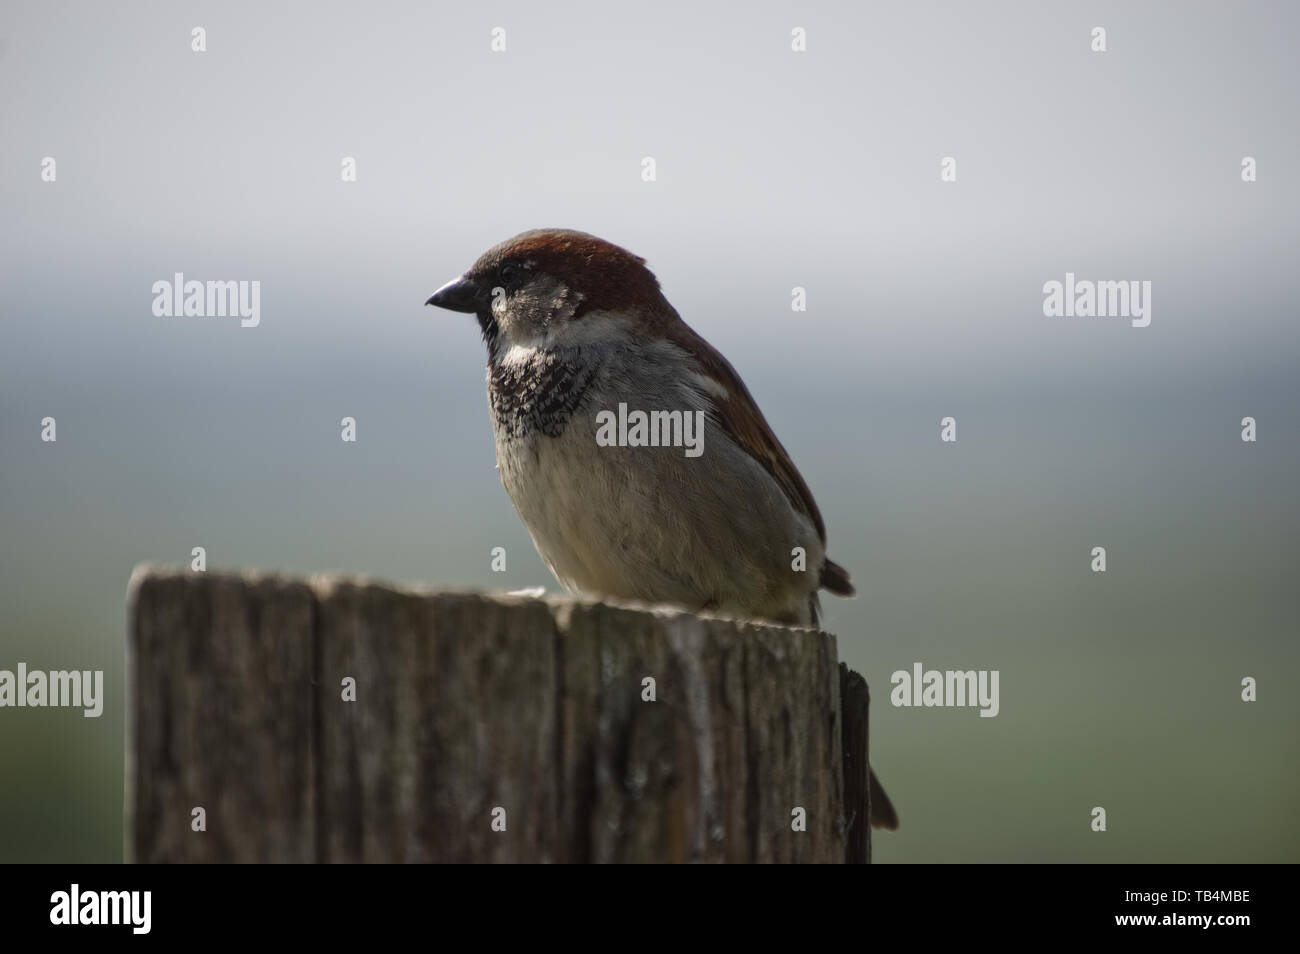 Male House Sparrow Sitting on post - Stock Image